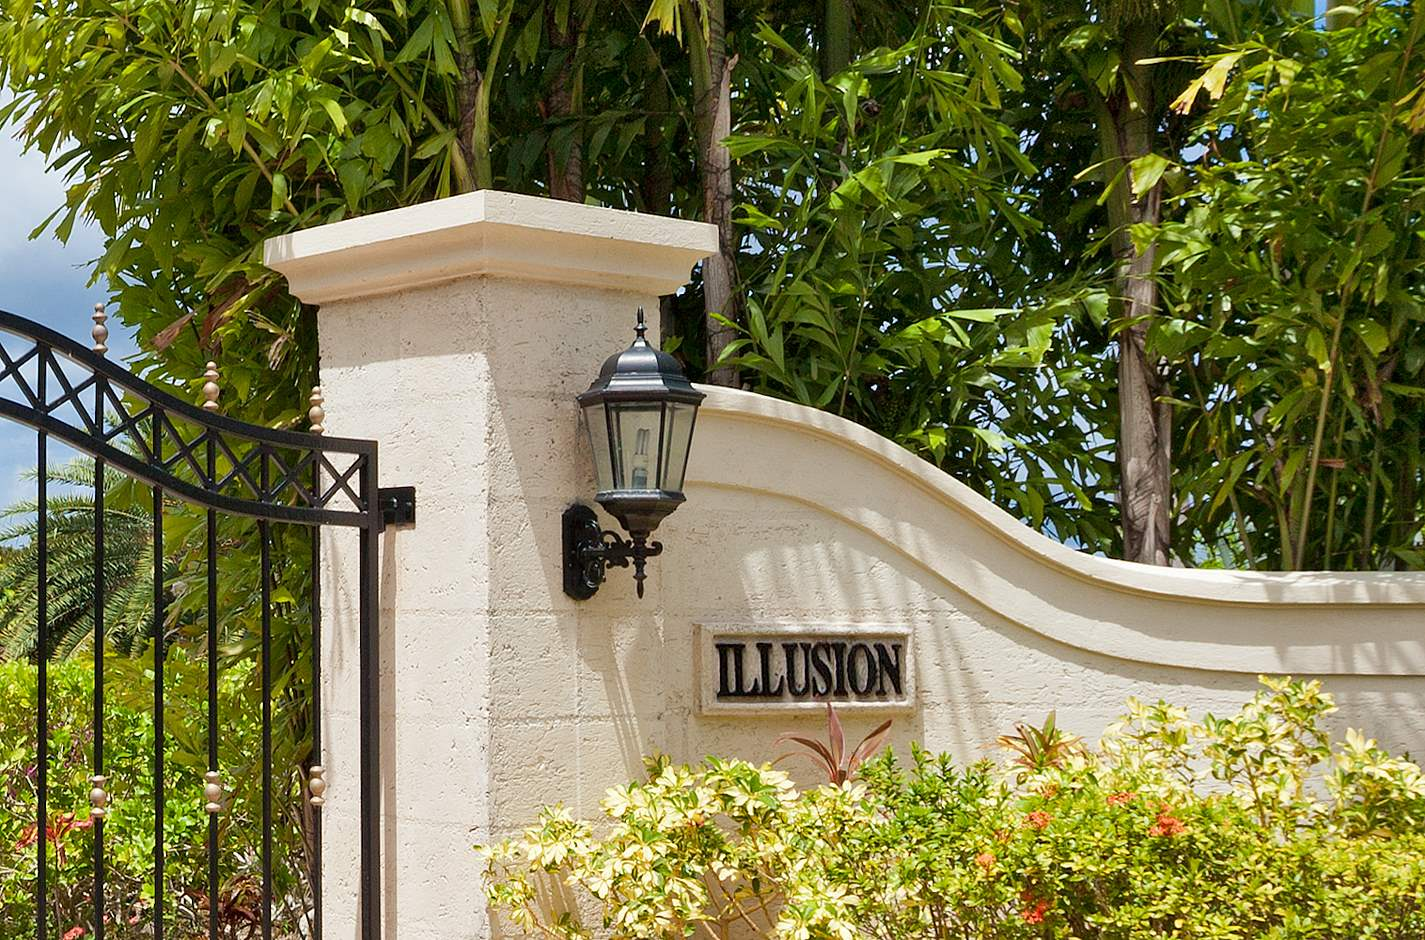 Illusion, Four Bedroom Rate, 4 bedroom villa in St. James & West Coast, Barbados Photo #24